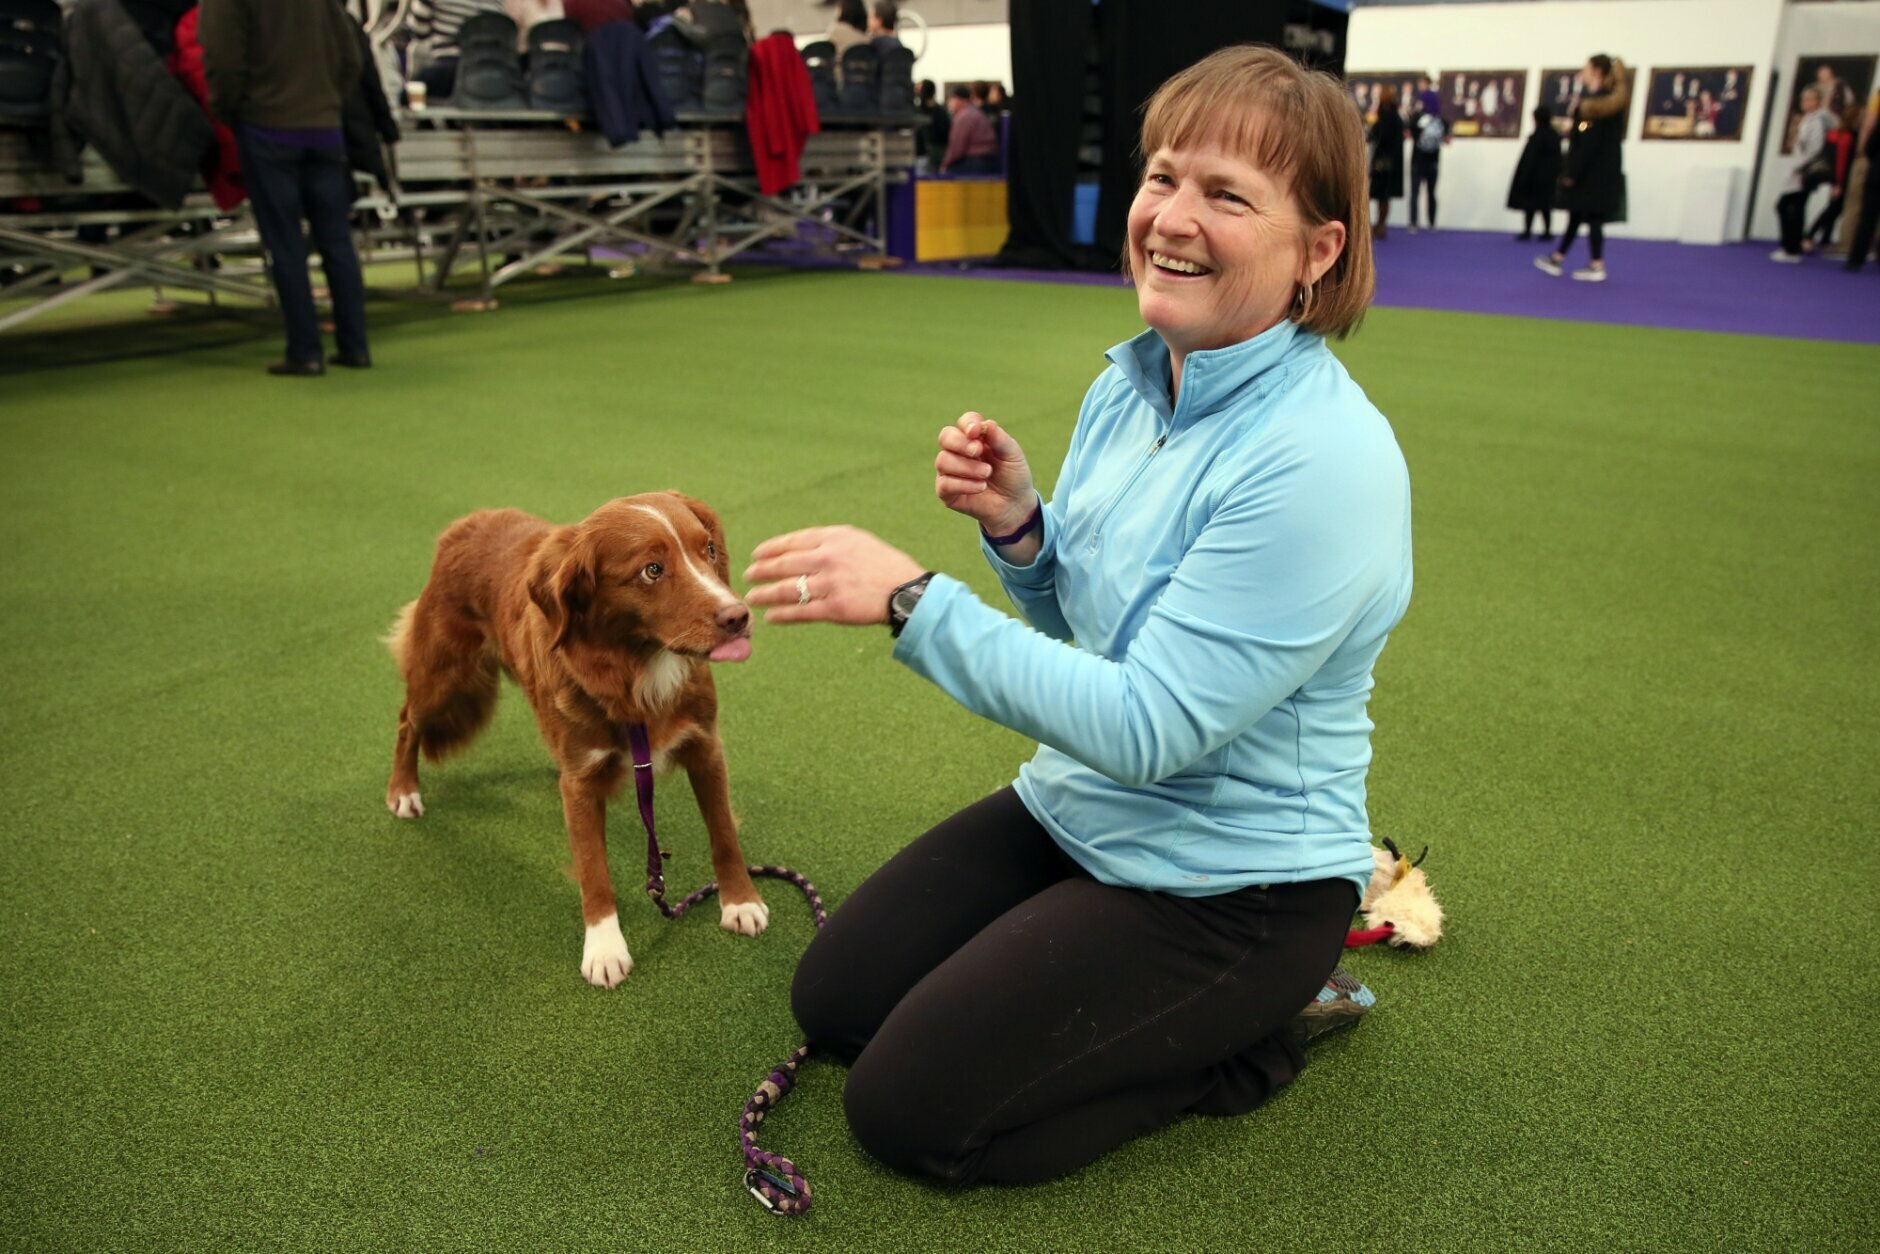 """Liberty, a Nova Scotia duck tolling retriever, and owner Marcia Lyons of Seattle get ready to compete at the Westminster Kennel Club's agility championship in New York, Saturday, Feb. 8, 2020. The retrievers, known as """"tollers,"""" aren't too common in the sport, but """"I like to be a little different,"""" Lyons said. (AP Photo/Jennifer Peltz)"""